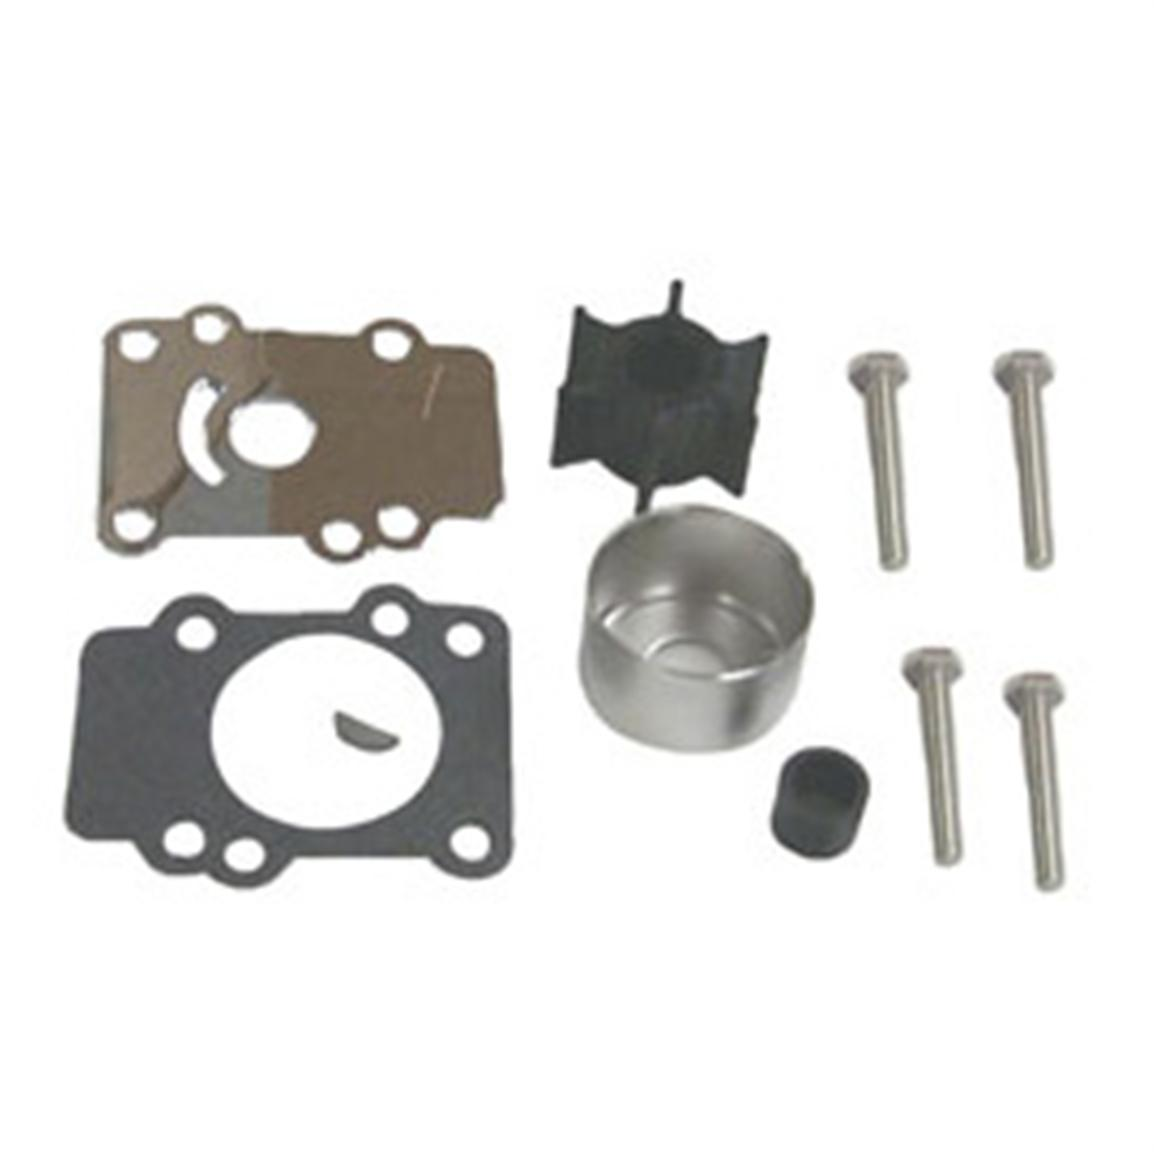 Sierra Impeller Kit for Yamaha, Replaces 682-W0078-A1-00